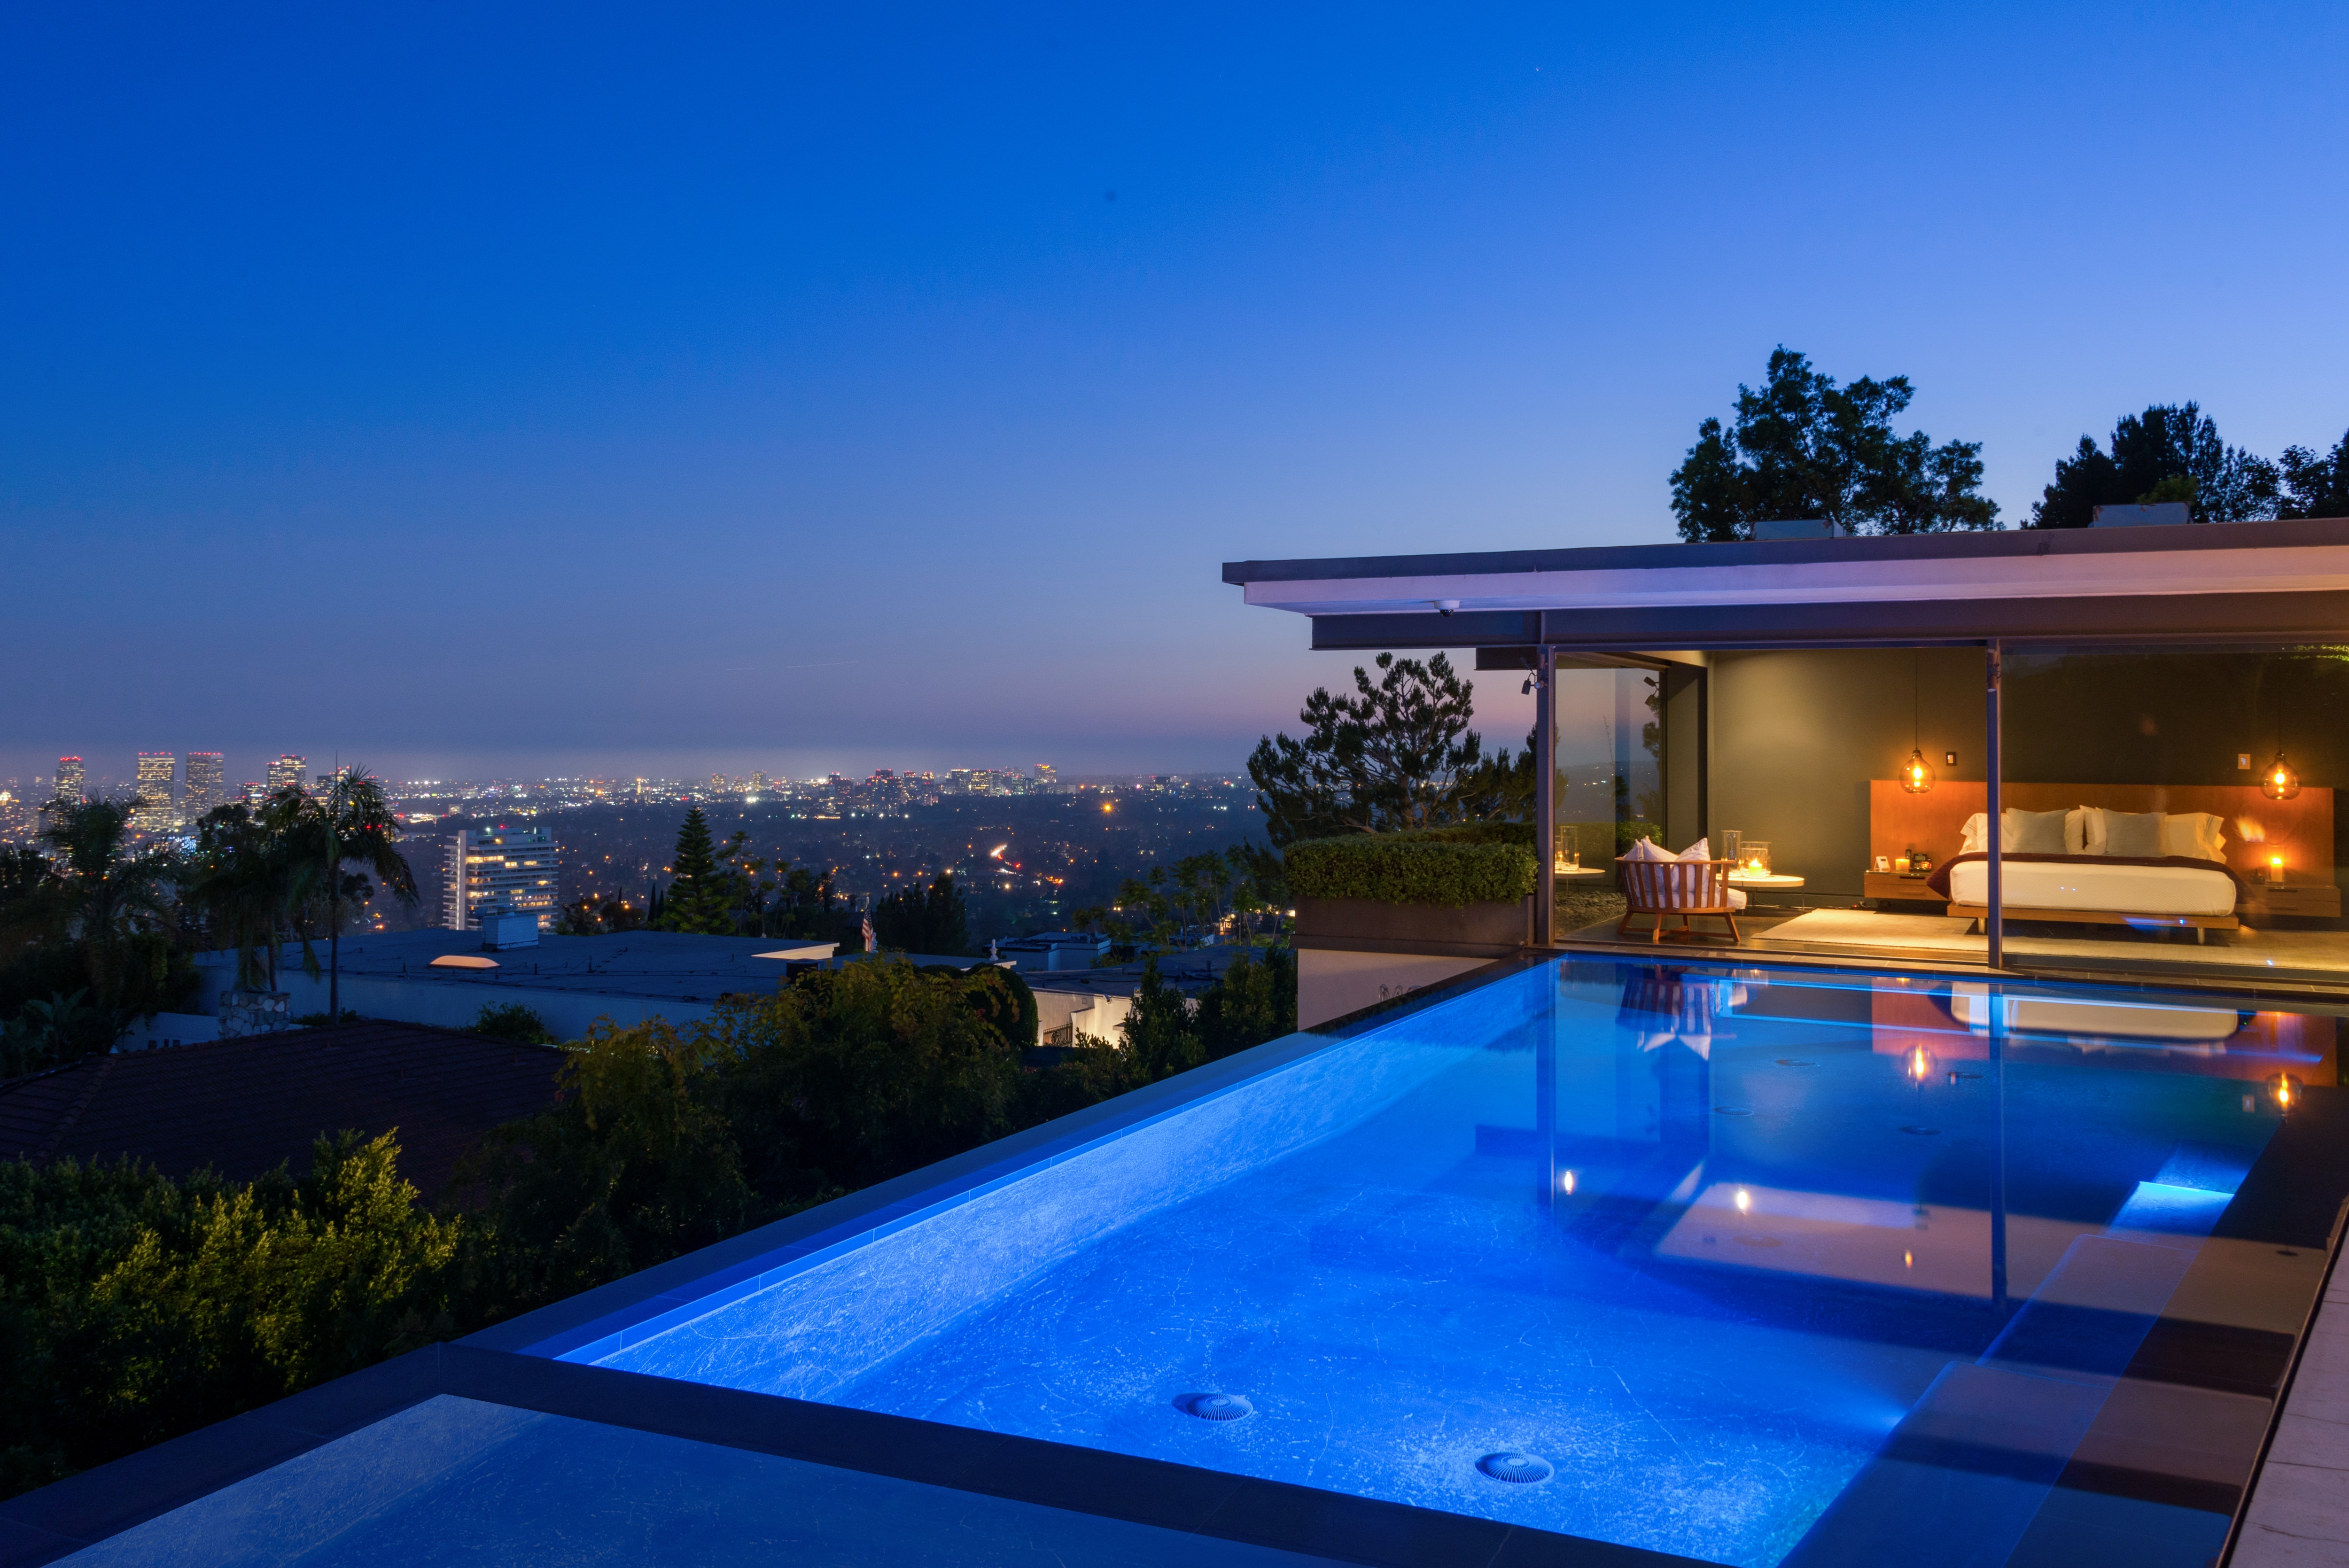 Matthew Perry's Home in Los Angeles